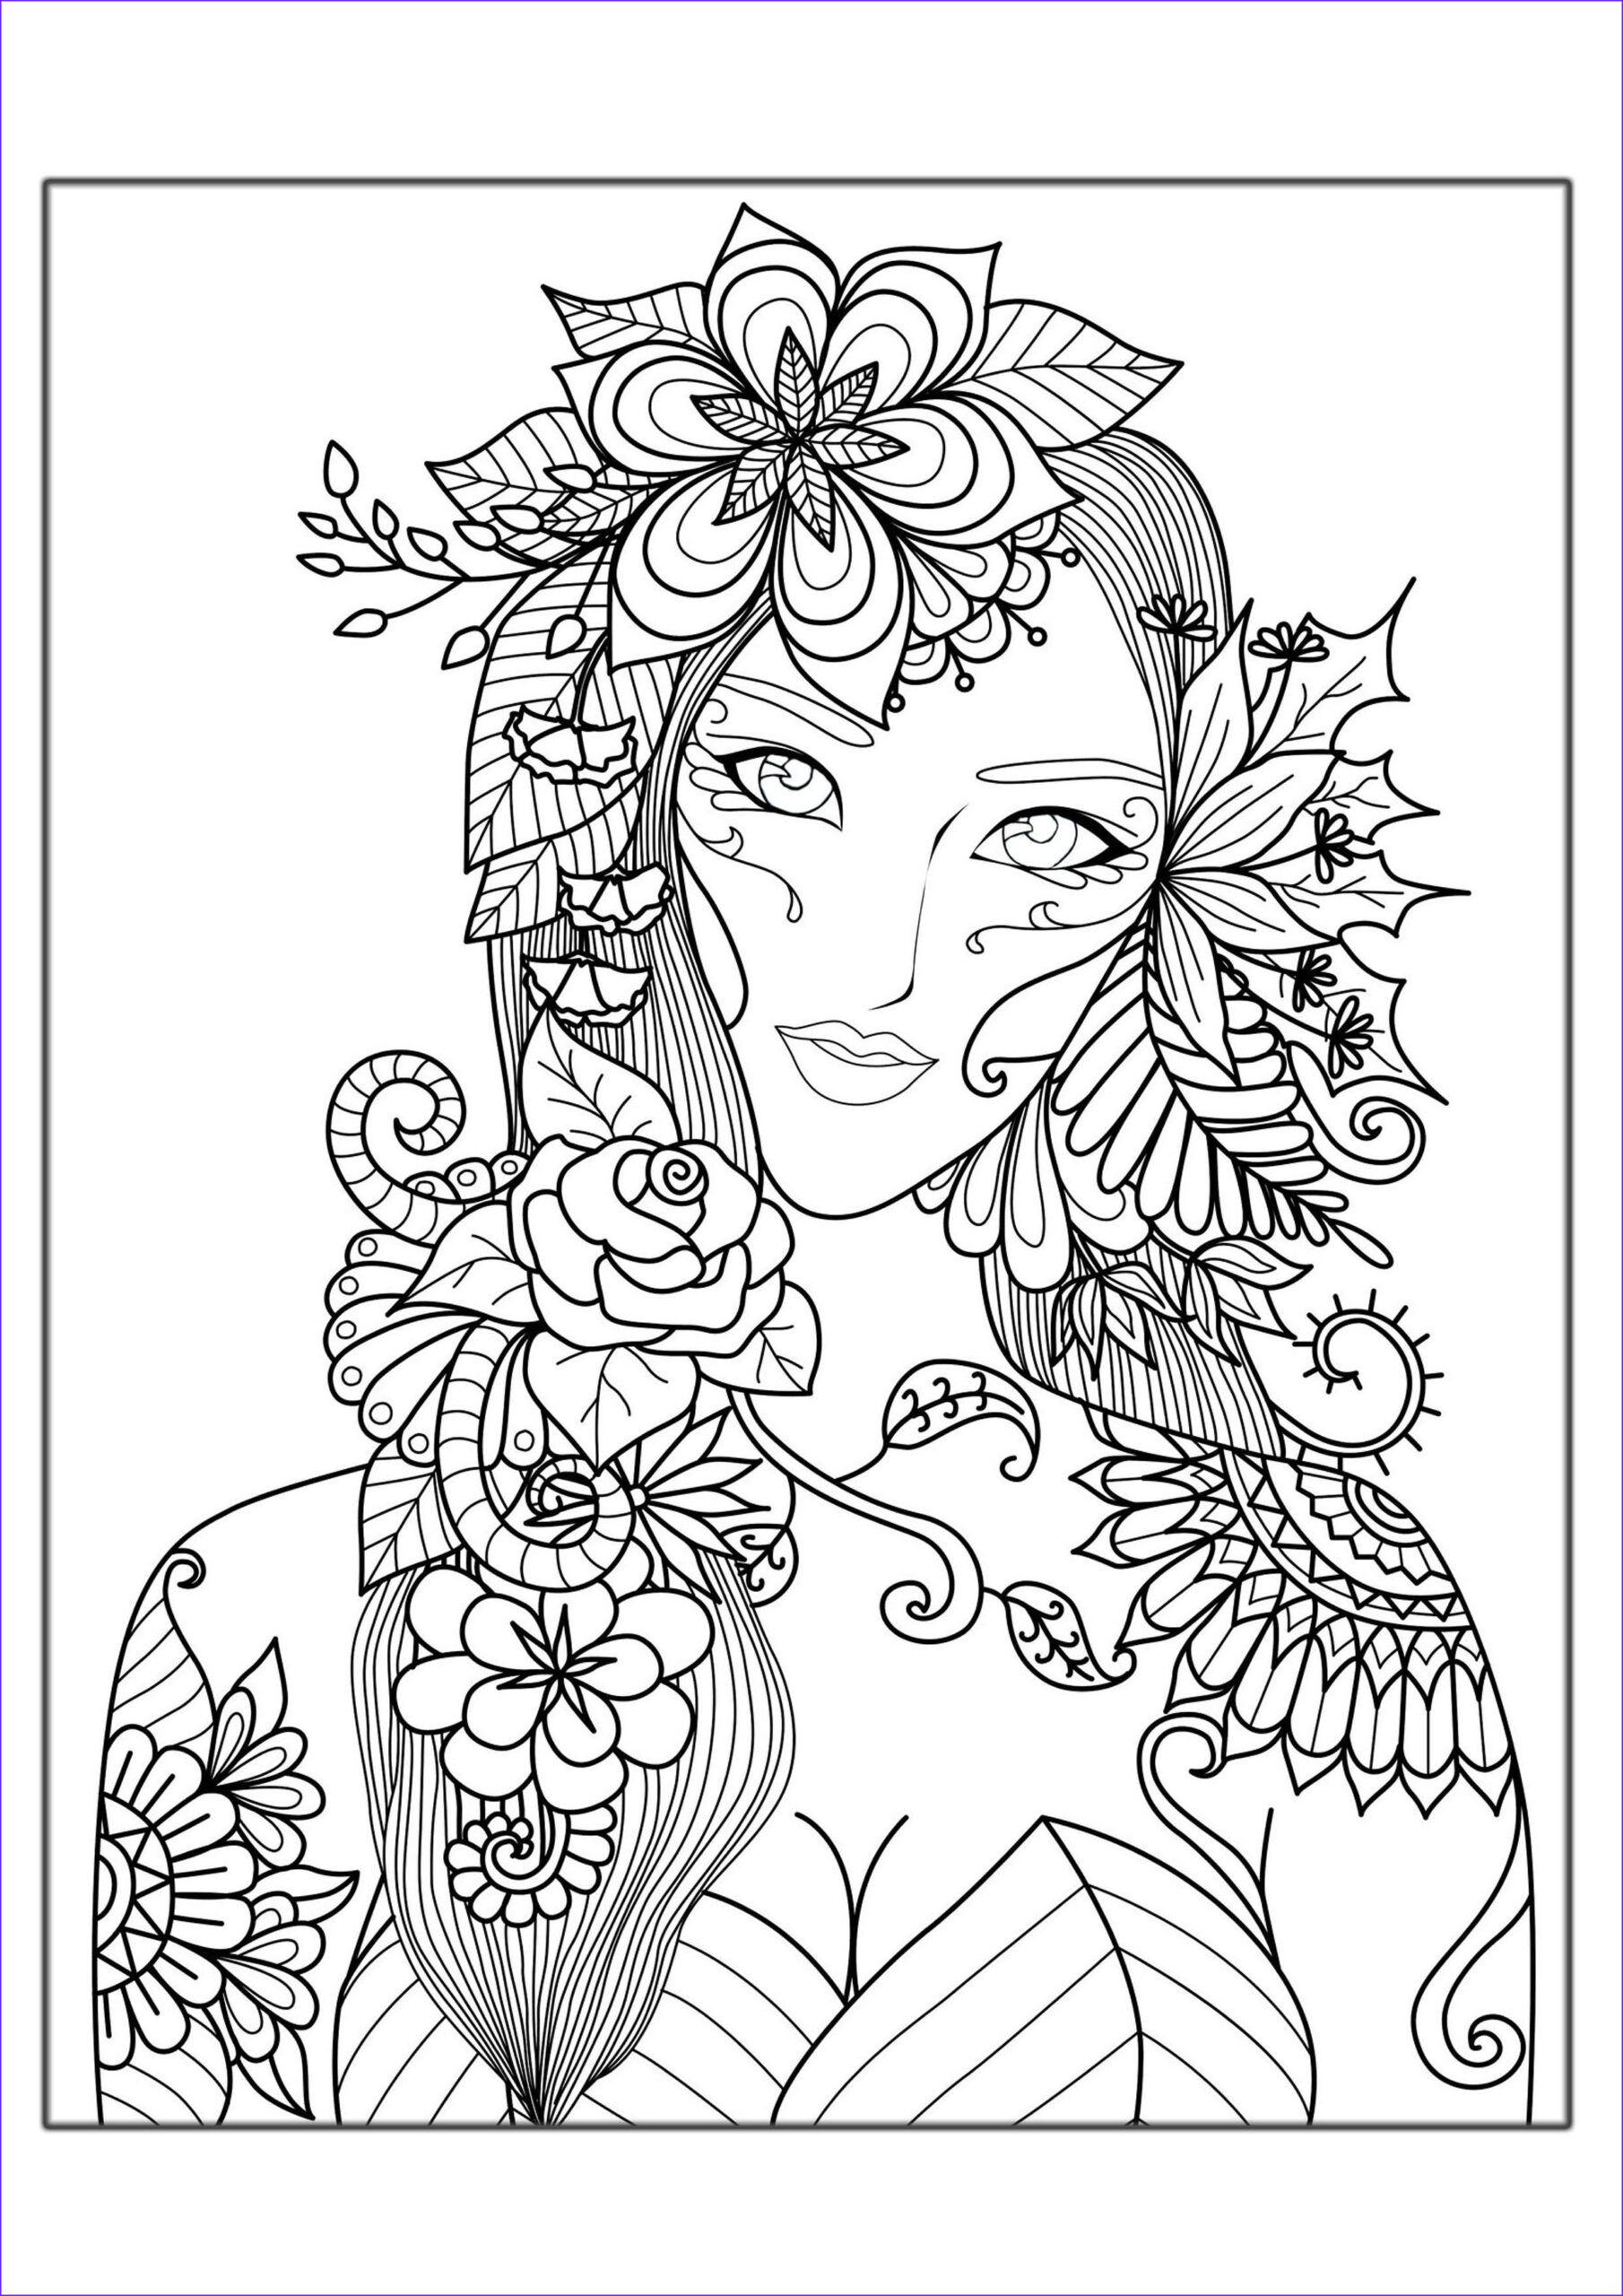 Coloring Sheets for toddlers Unique Photography Fall Coloring Pages for Adults Best Coloring Pages for Kids